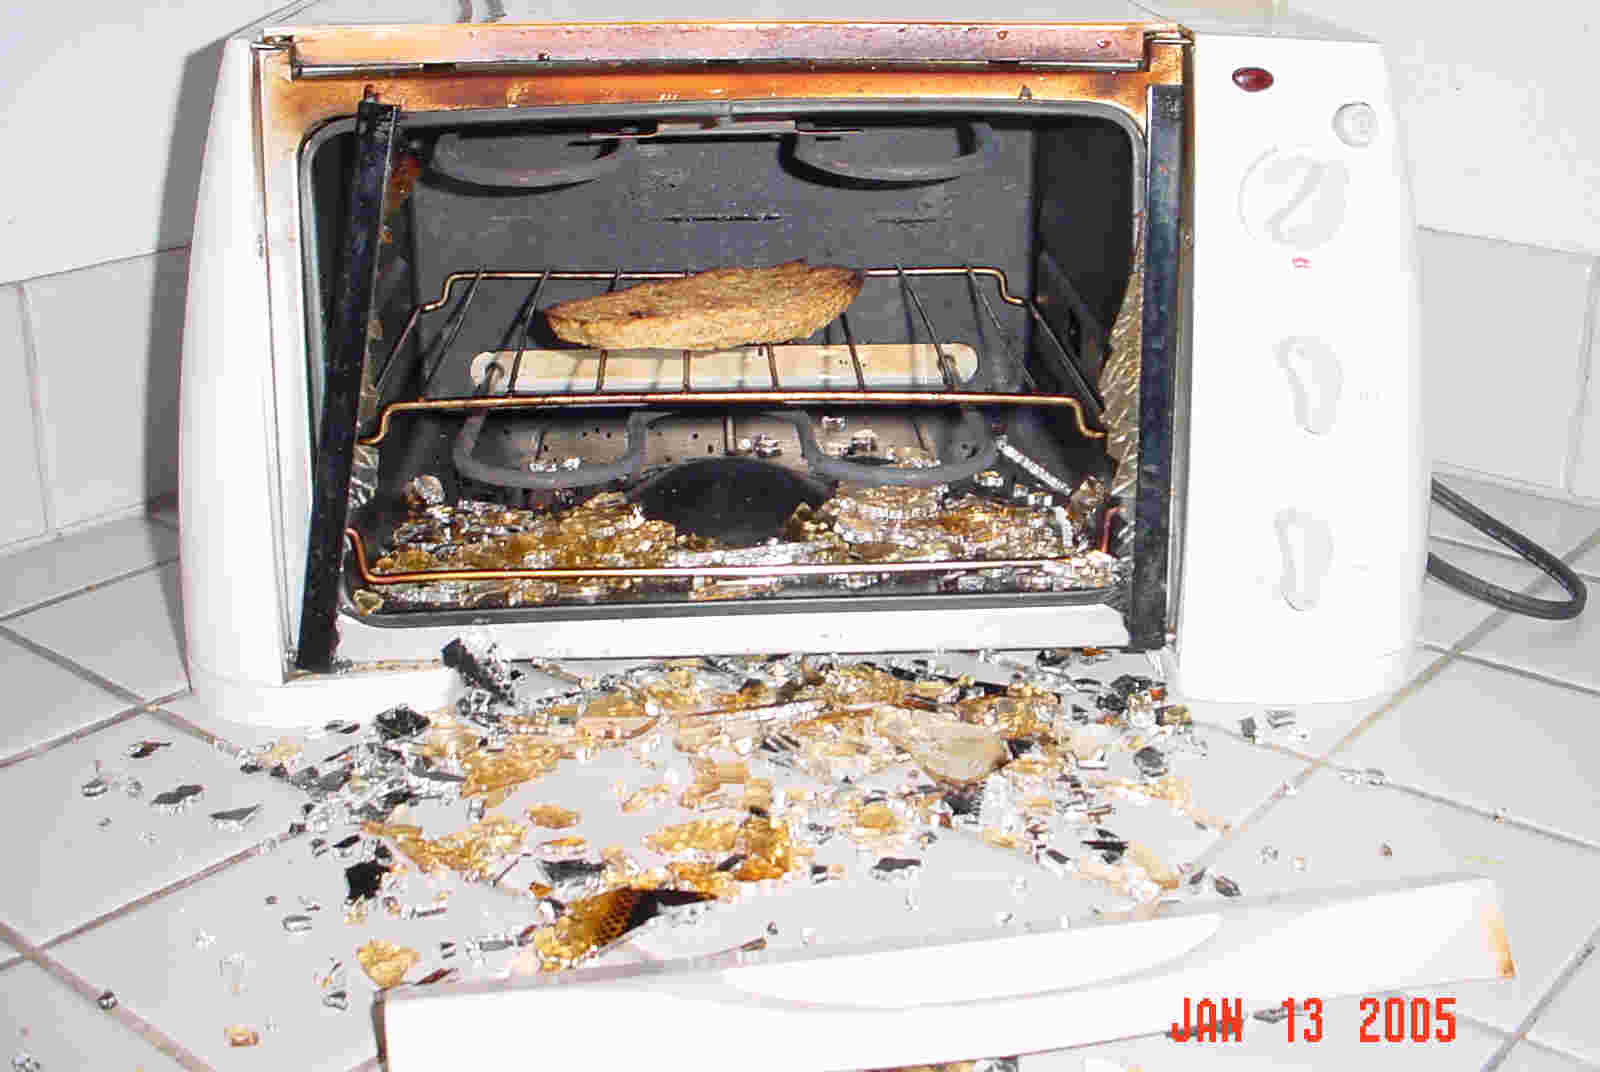 EXPLODING TOASTMASTER TOASTER OVEN TOASTMASTER DOESN T SEEM TO